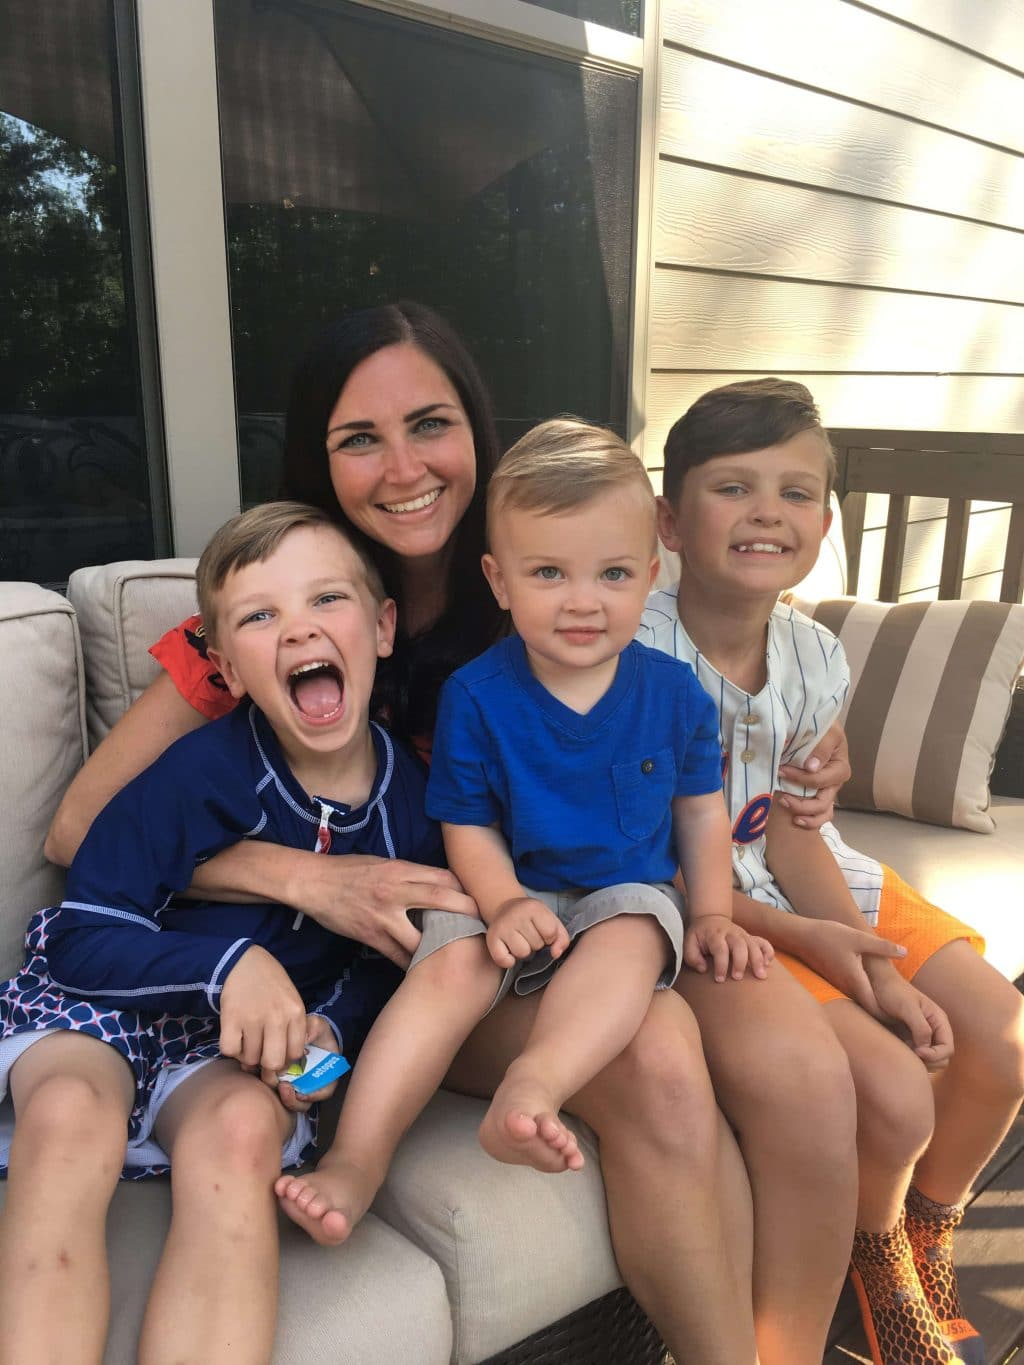 Motherhood, mom guilt, surviving summer as a mom, molly wey